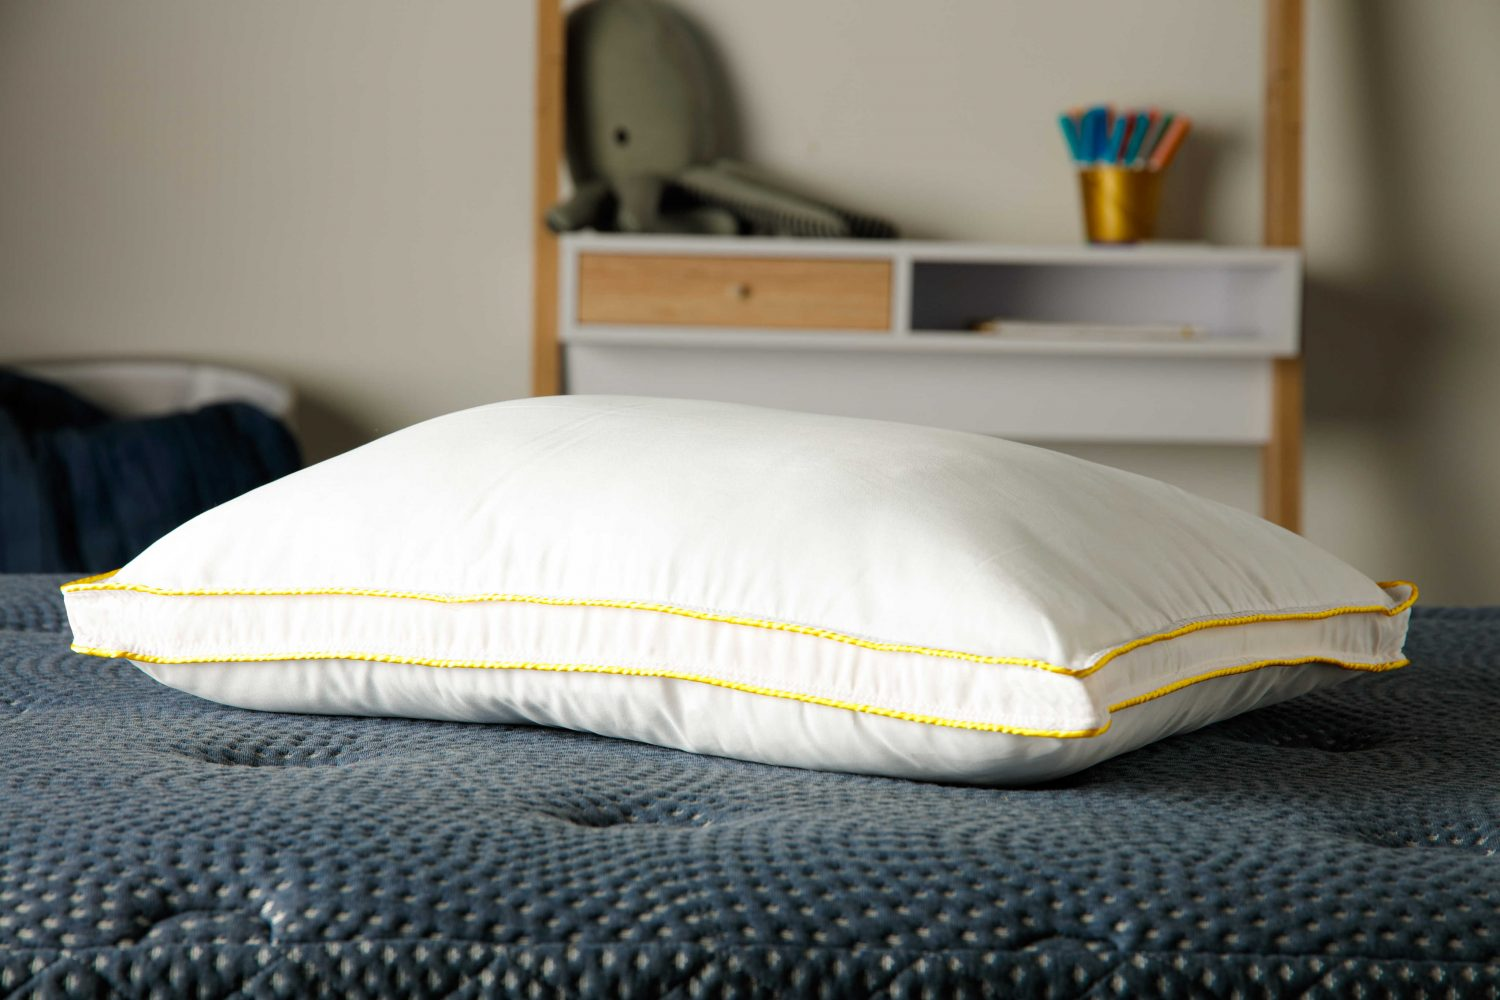 The Motherchic Luft pillows